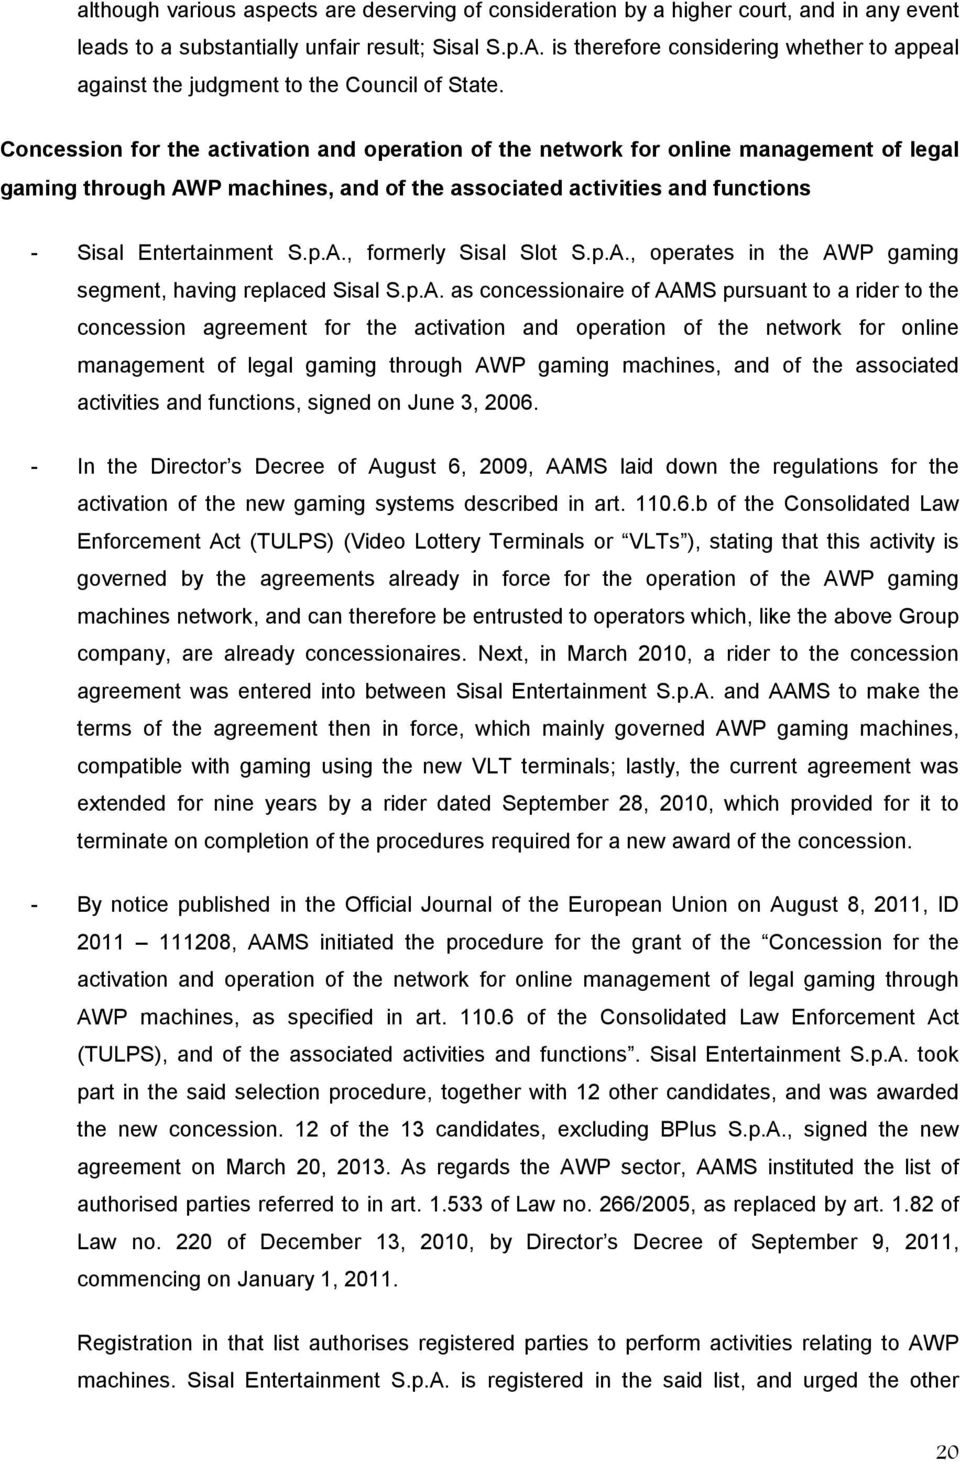 Concession for the activation and operation of the network for online management of legal gaming through AWP machines, and of the associated activities and functions - Sisal Entertainment S.p.A., formerly Sisal Slot S.